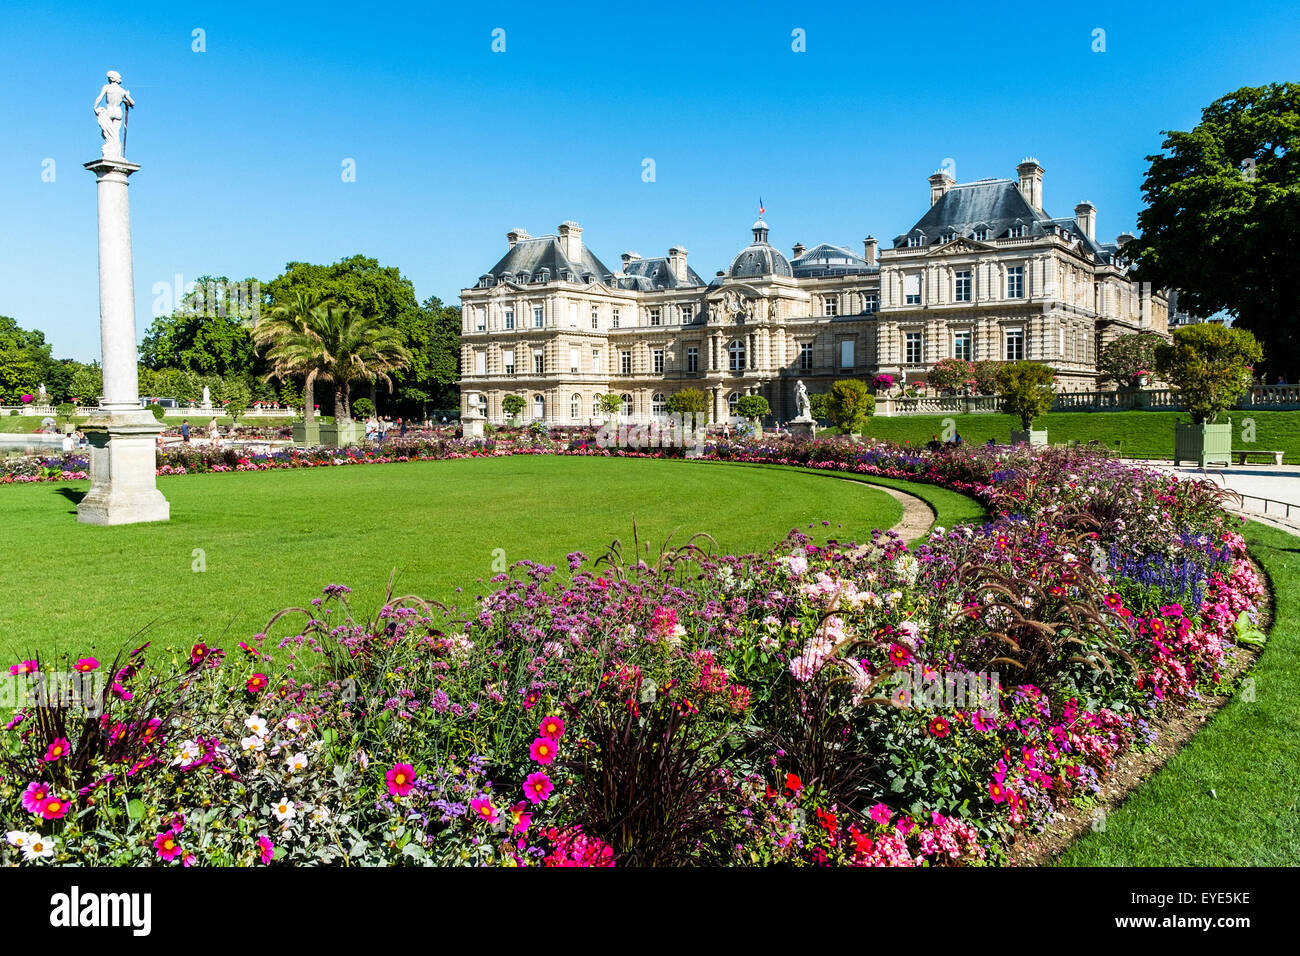 Le jardin du luxembourg gardens paris france stock photo for Jardin du luxembourg